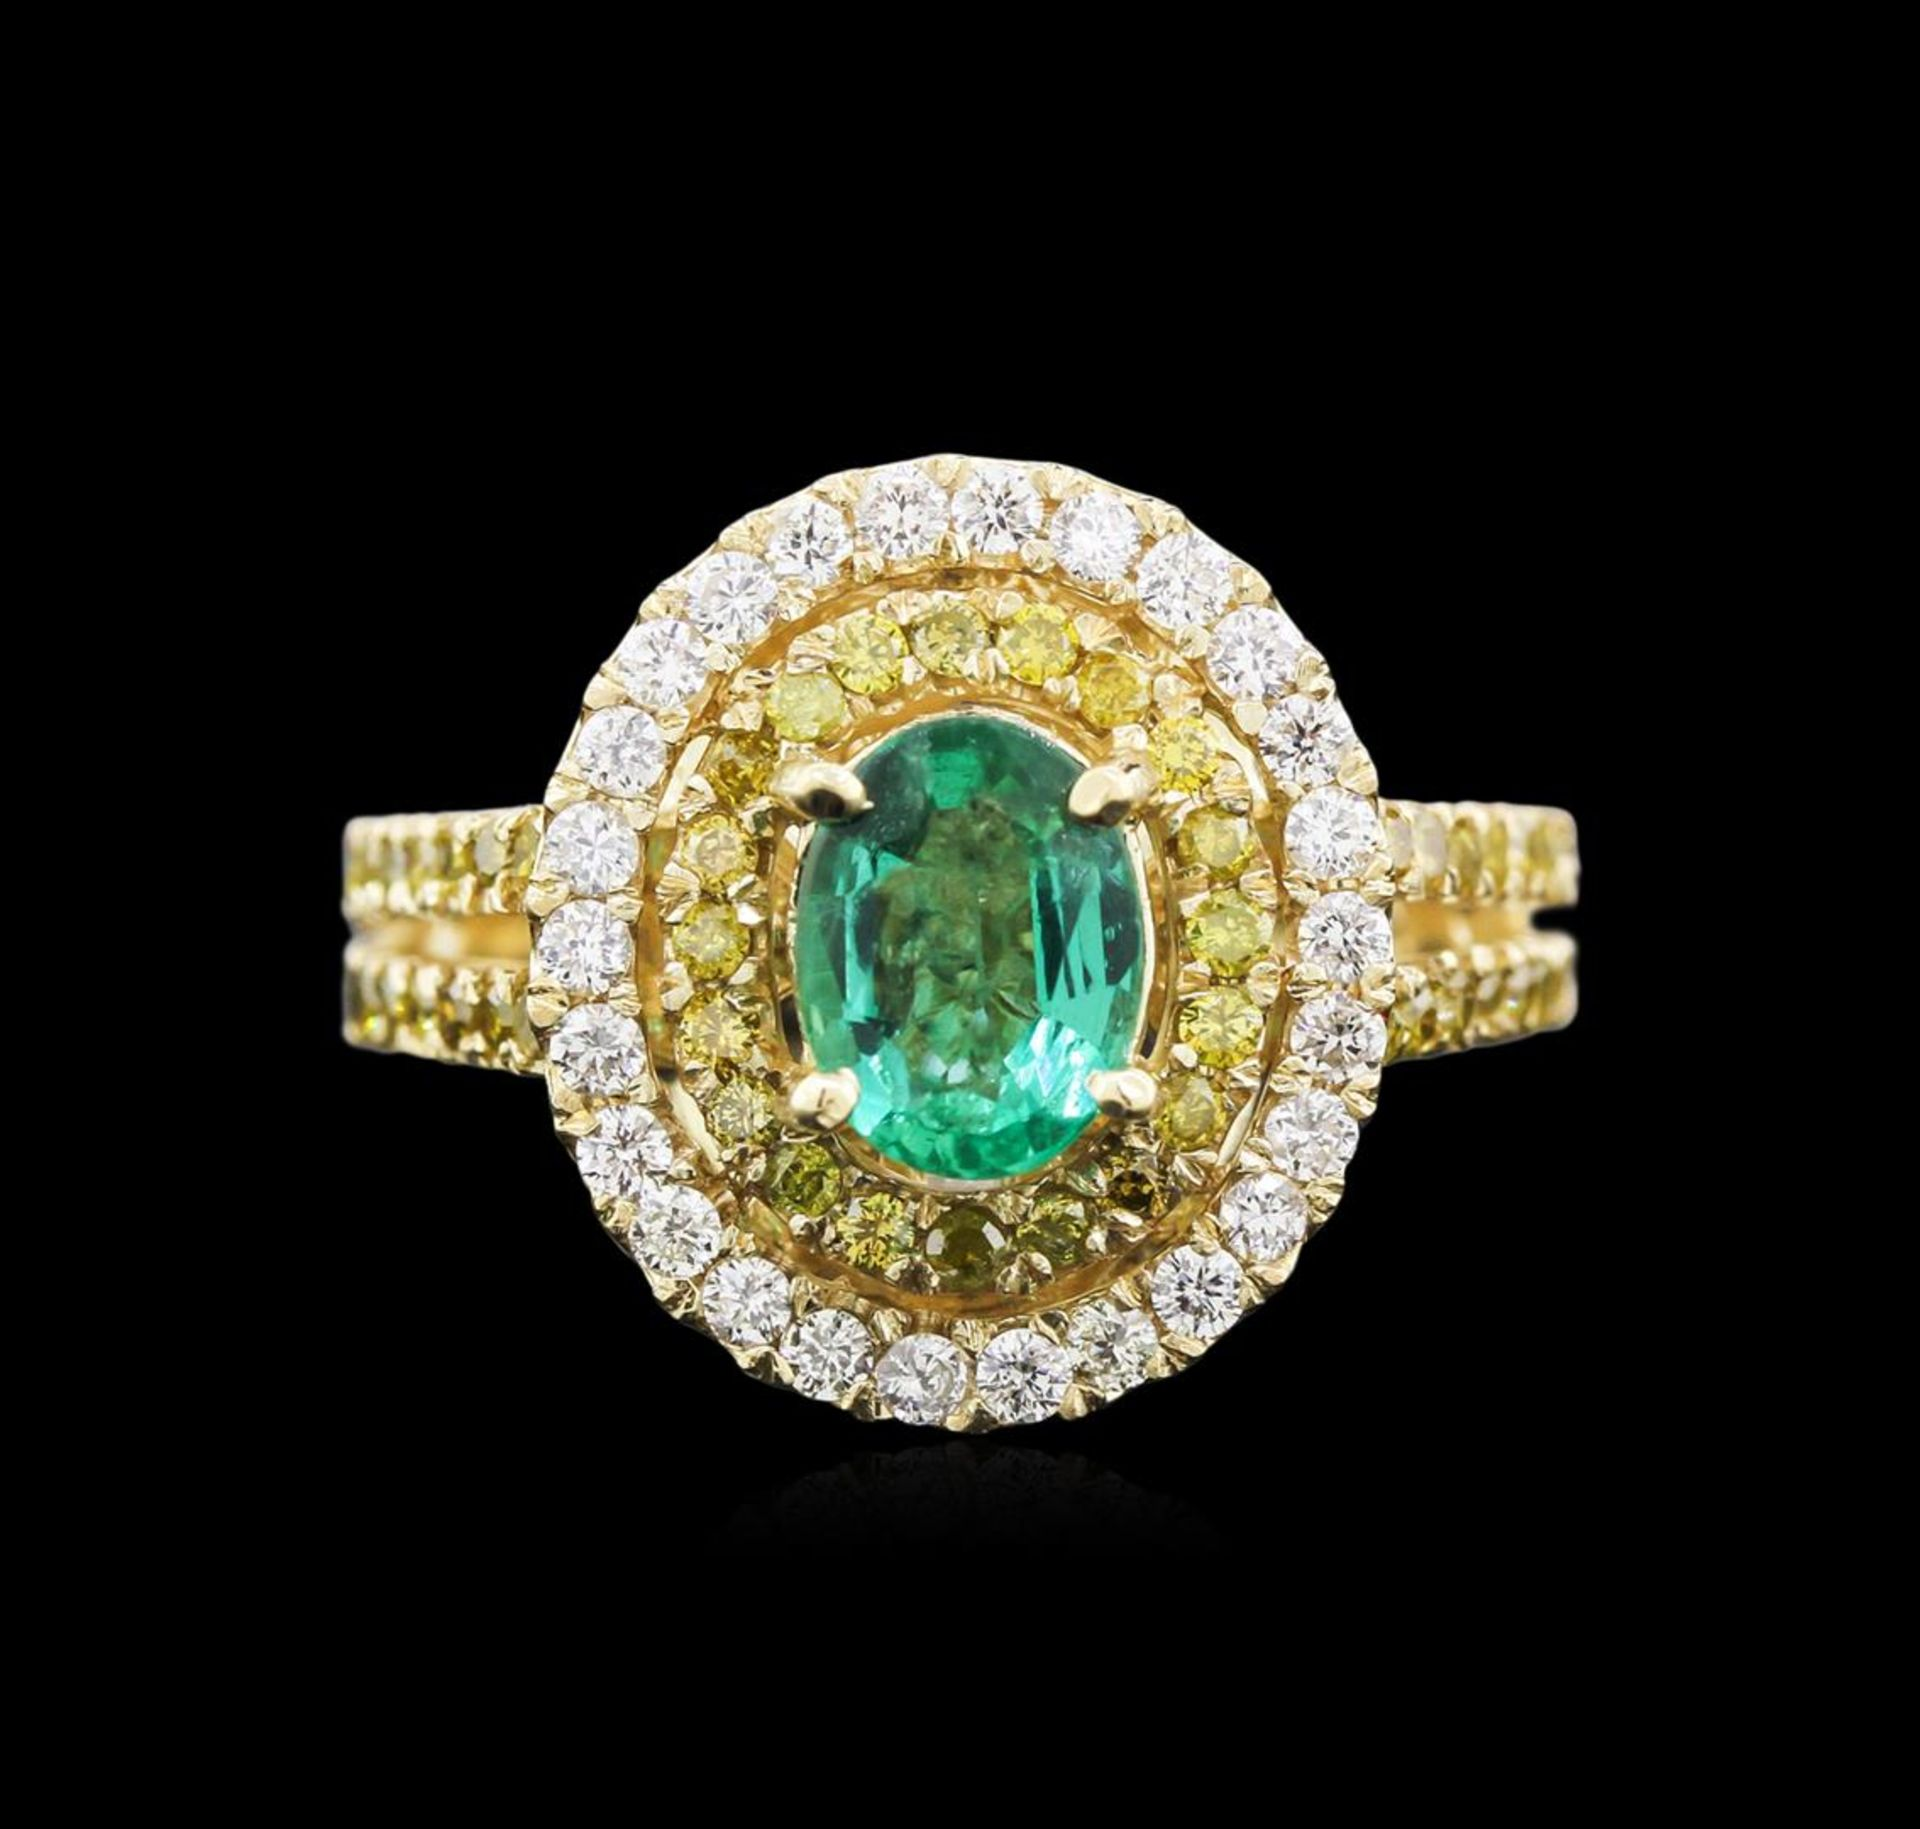 0.88 ctw Emerald and Diamond Ring - 14KT Yellow Gold - Image 2 of 3